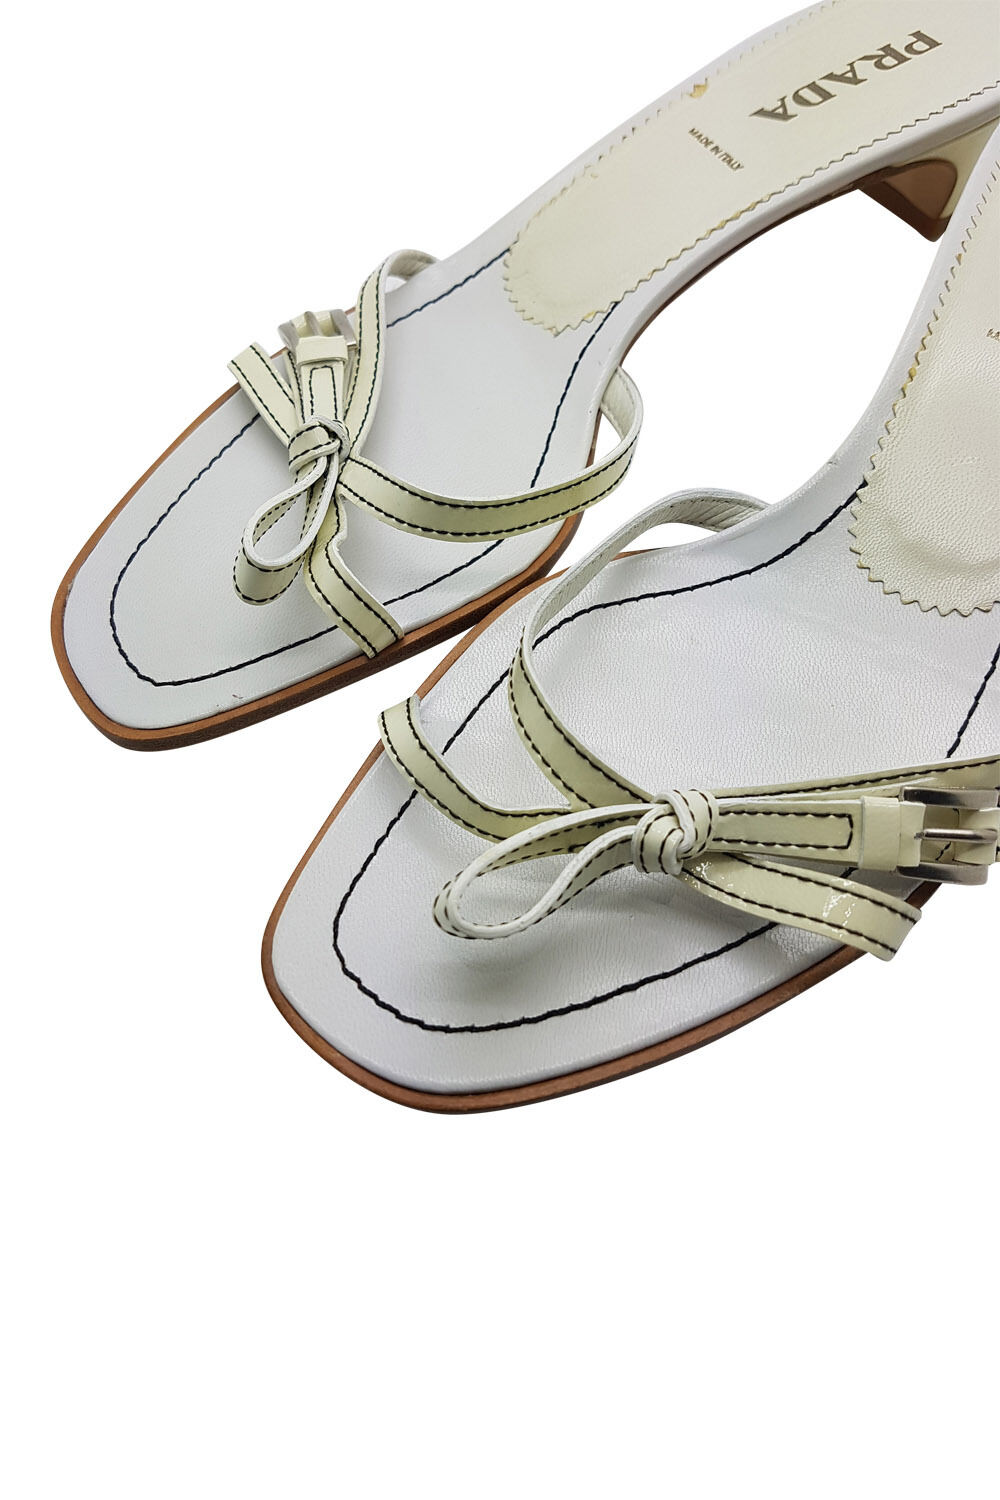 PRADA Weiß STRAPPY AND CREAM LOW HEELED STRAPPY Weiß SANDALS (38.5) 3d3bdb